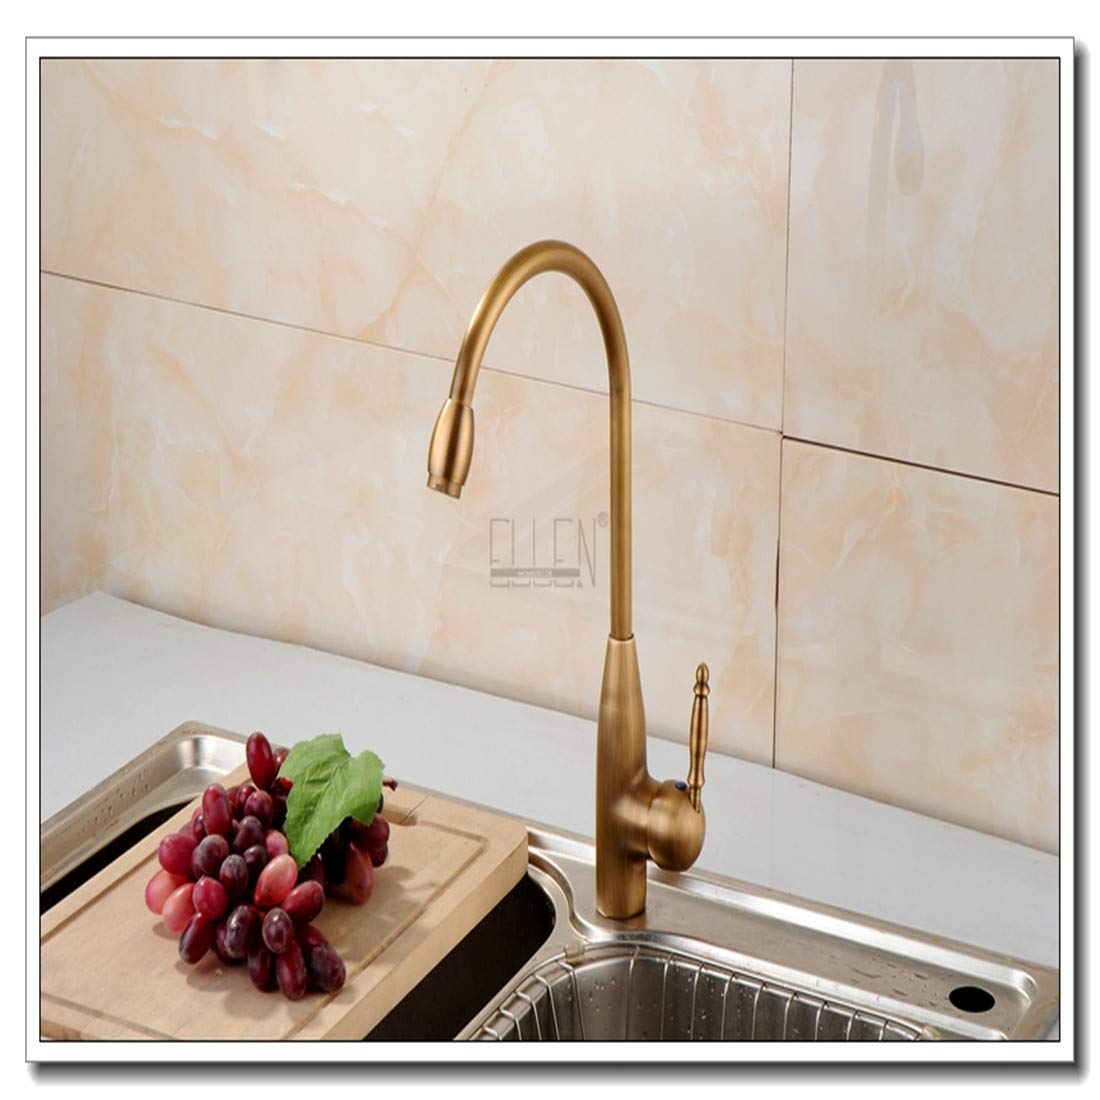 Retro Plated Hot and Cold Faucet Retrokitchen Faucets Antique Bronze Faucet for Kitchen Mixer Tap